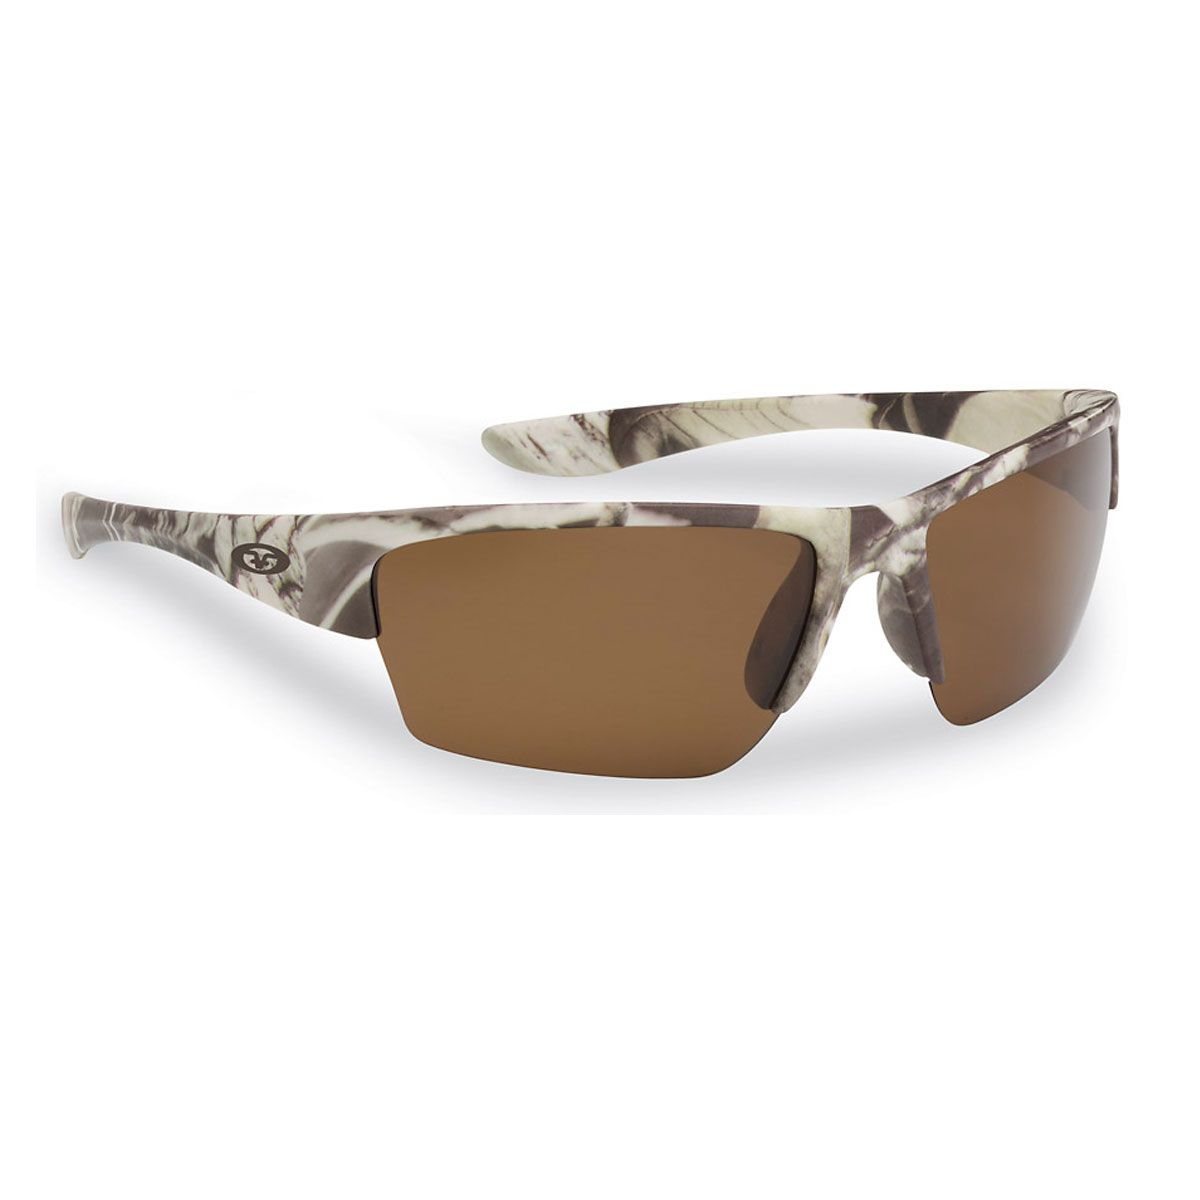 4258f0cf69 Flying Fisherman Glades Action Angler Series Sunglasses – Glasgow Angling  Centre